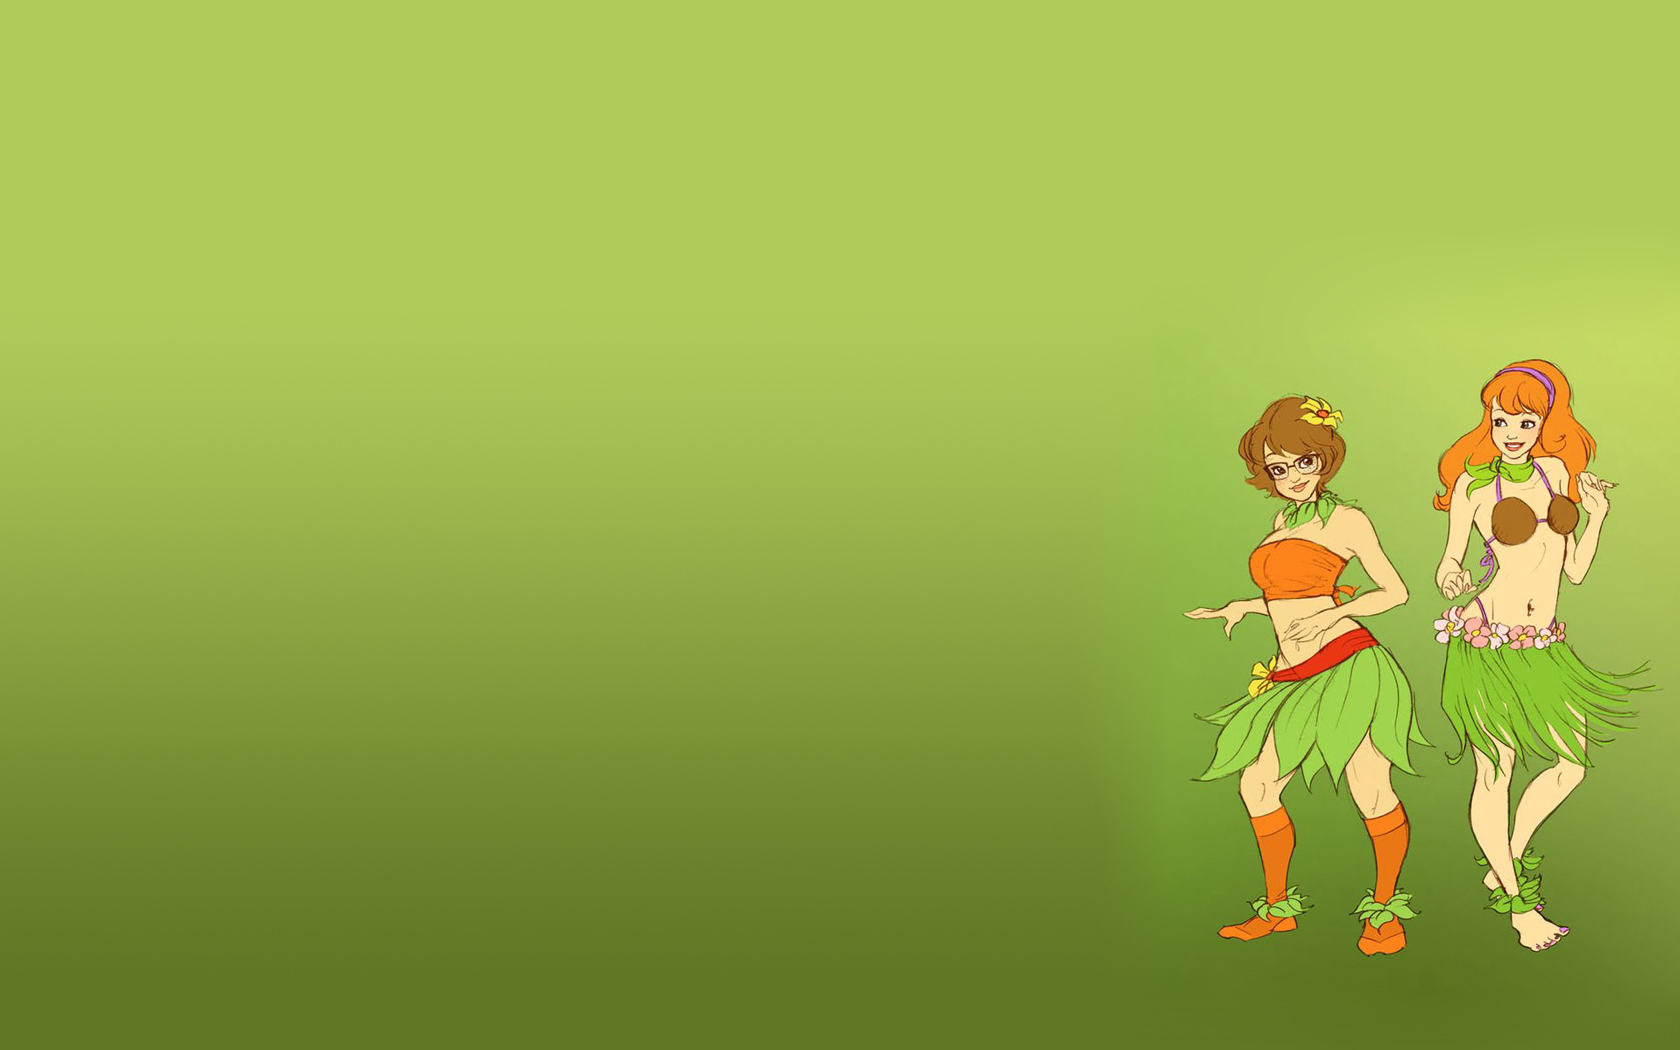 Scooby doo Characters Wallpaper for PC (13)